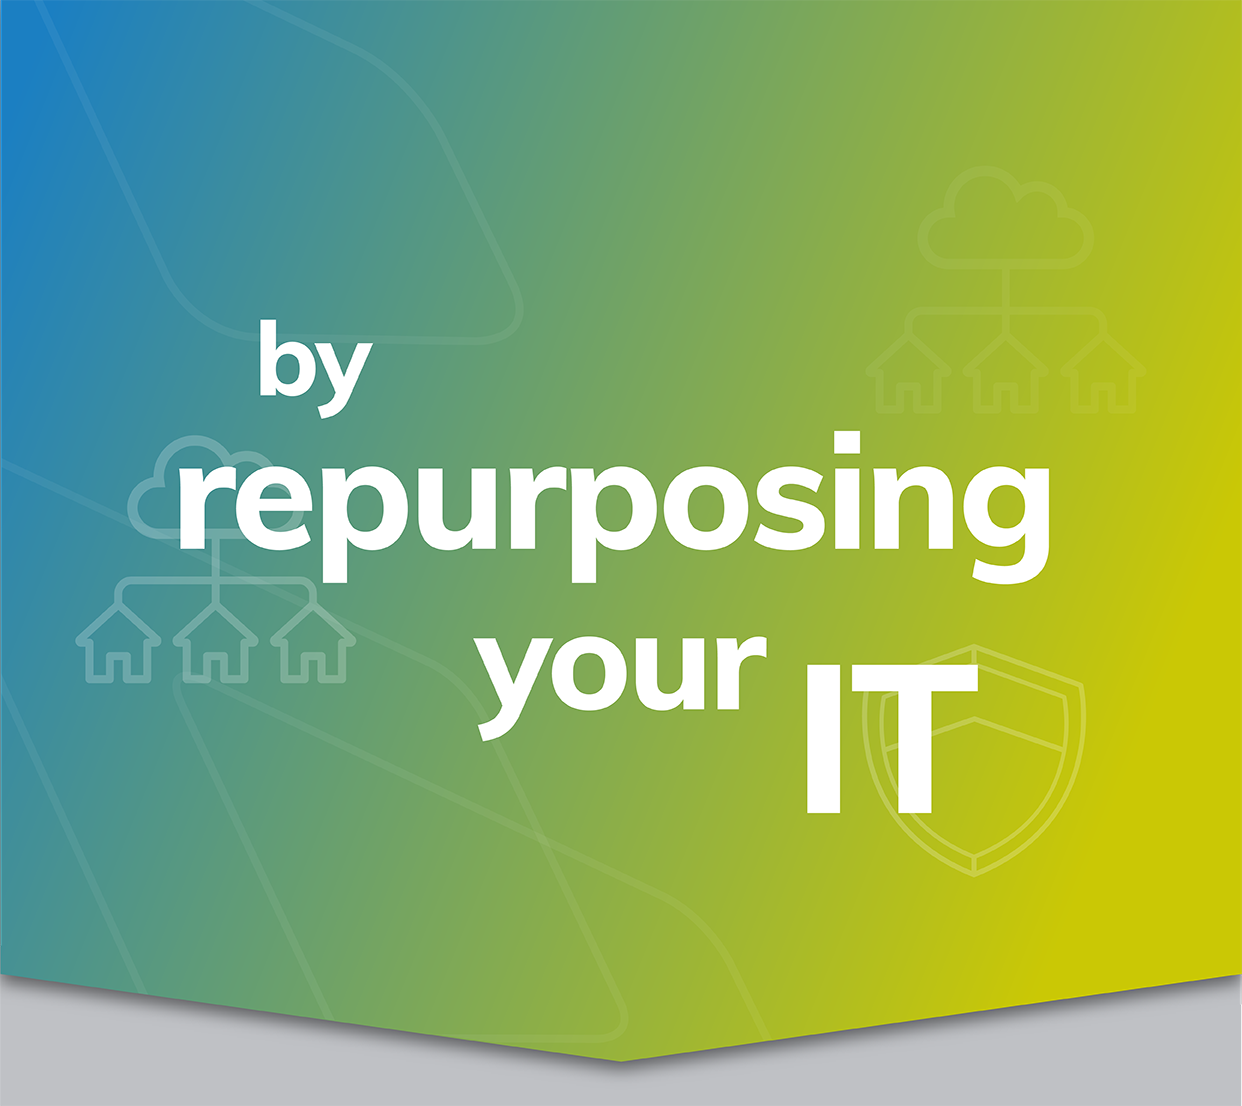 by repurposing your IT